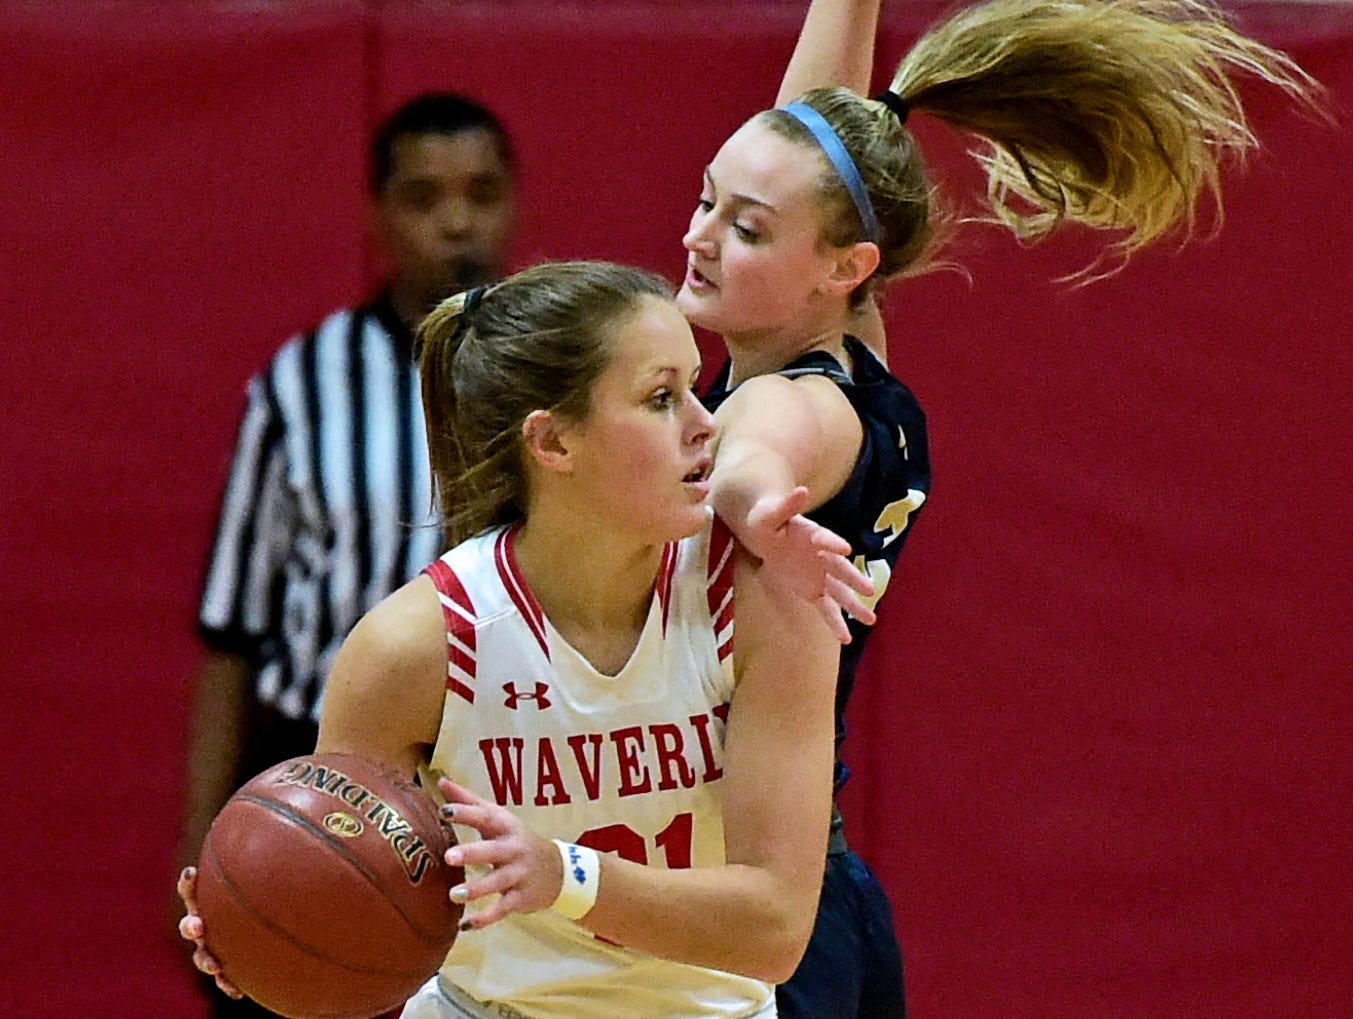 Waverly's Wendie Hammond (21) looks to get past Susquehanna Valley's Brooke Ryder (2) during the Section 4 Class B girls basketball playoffs at Waverly. February 21, 2019.